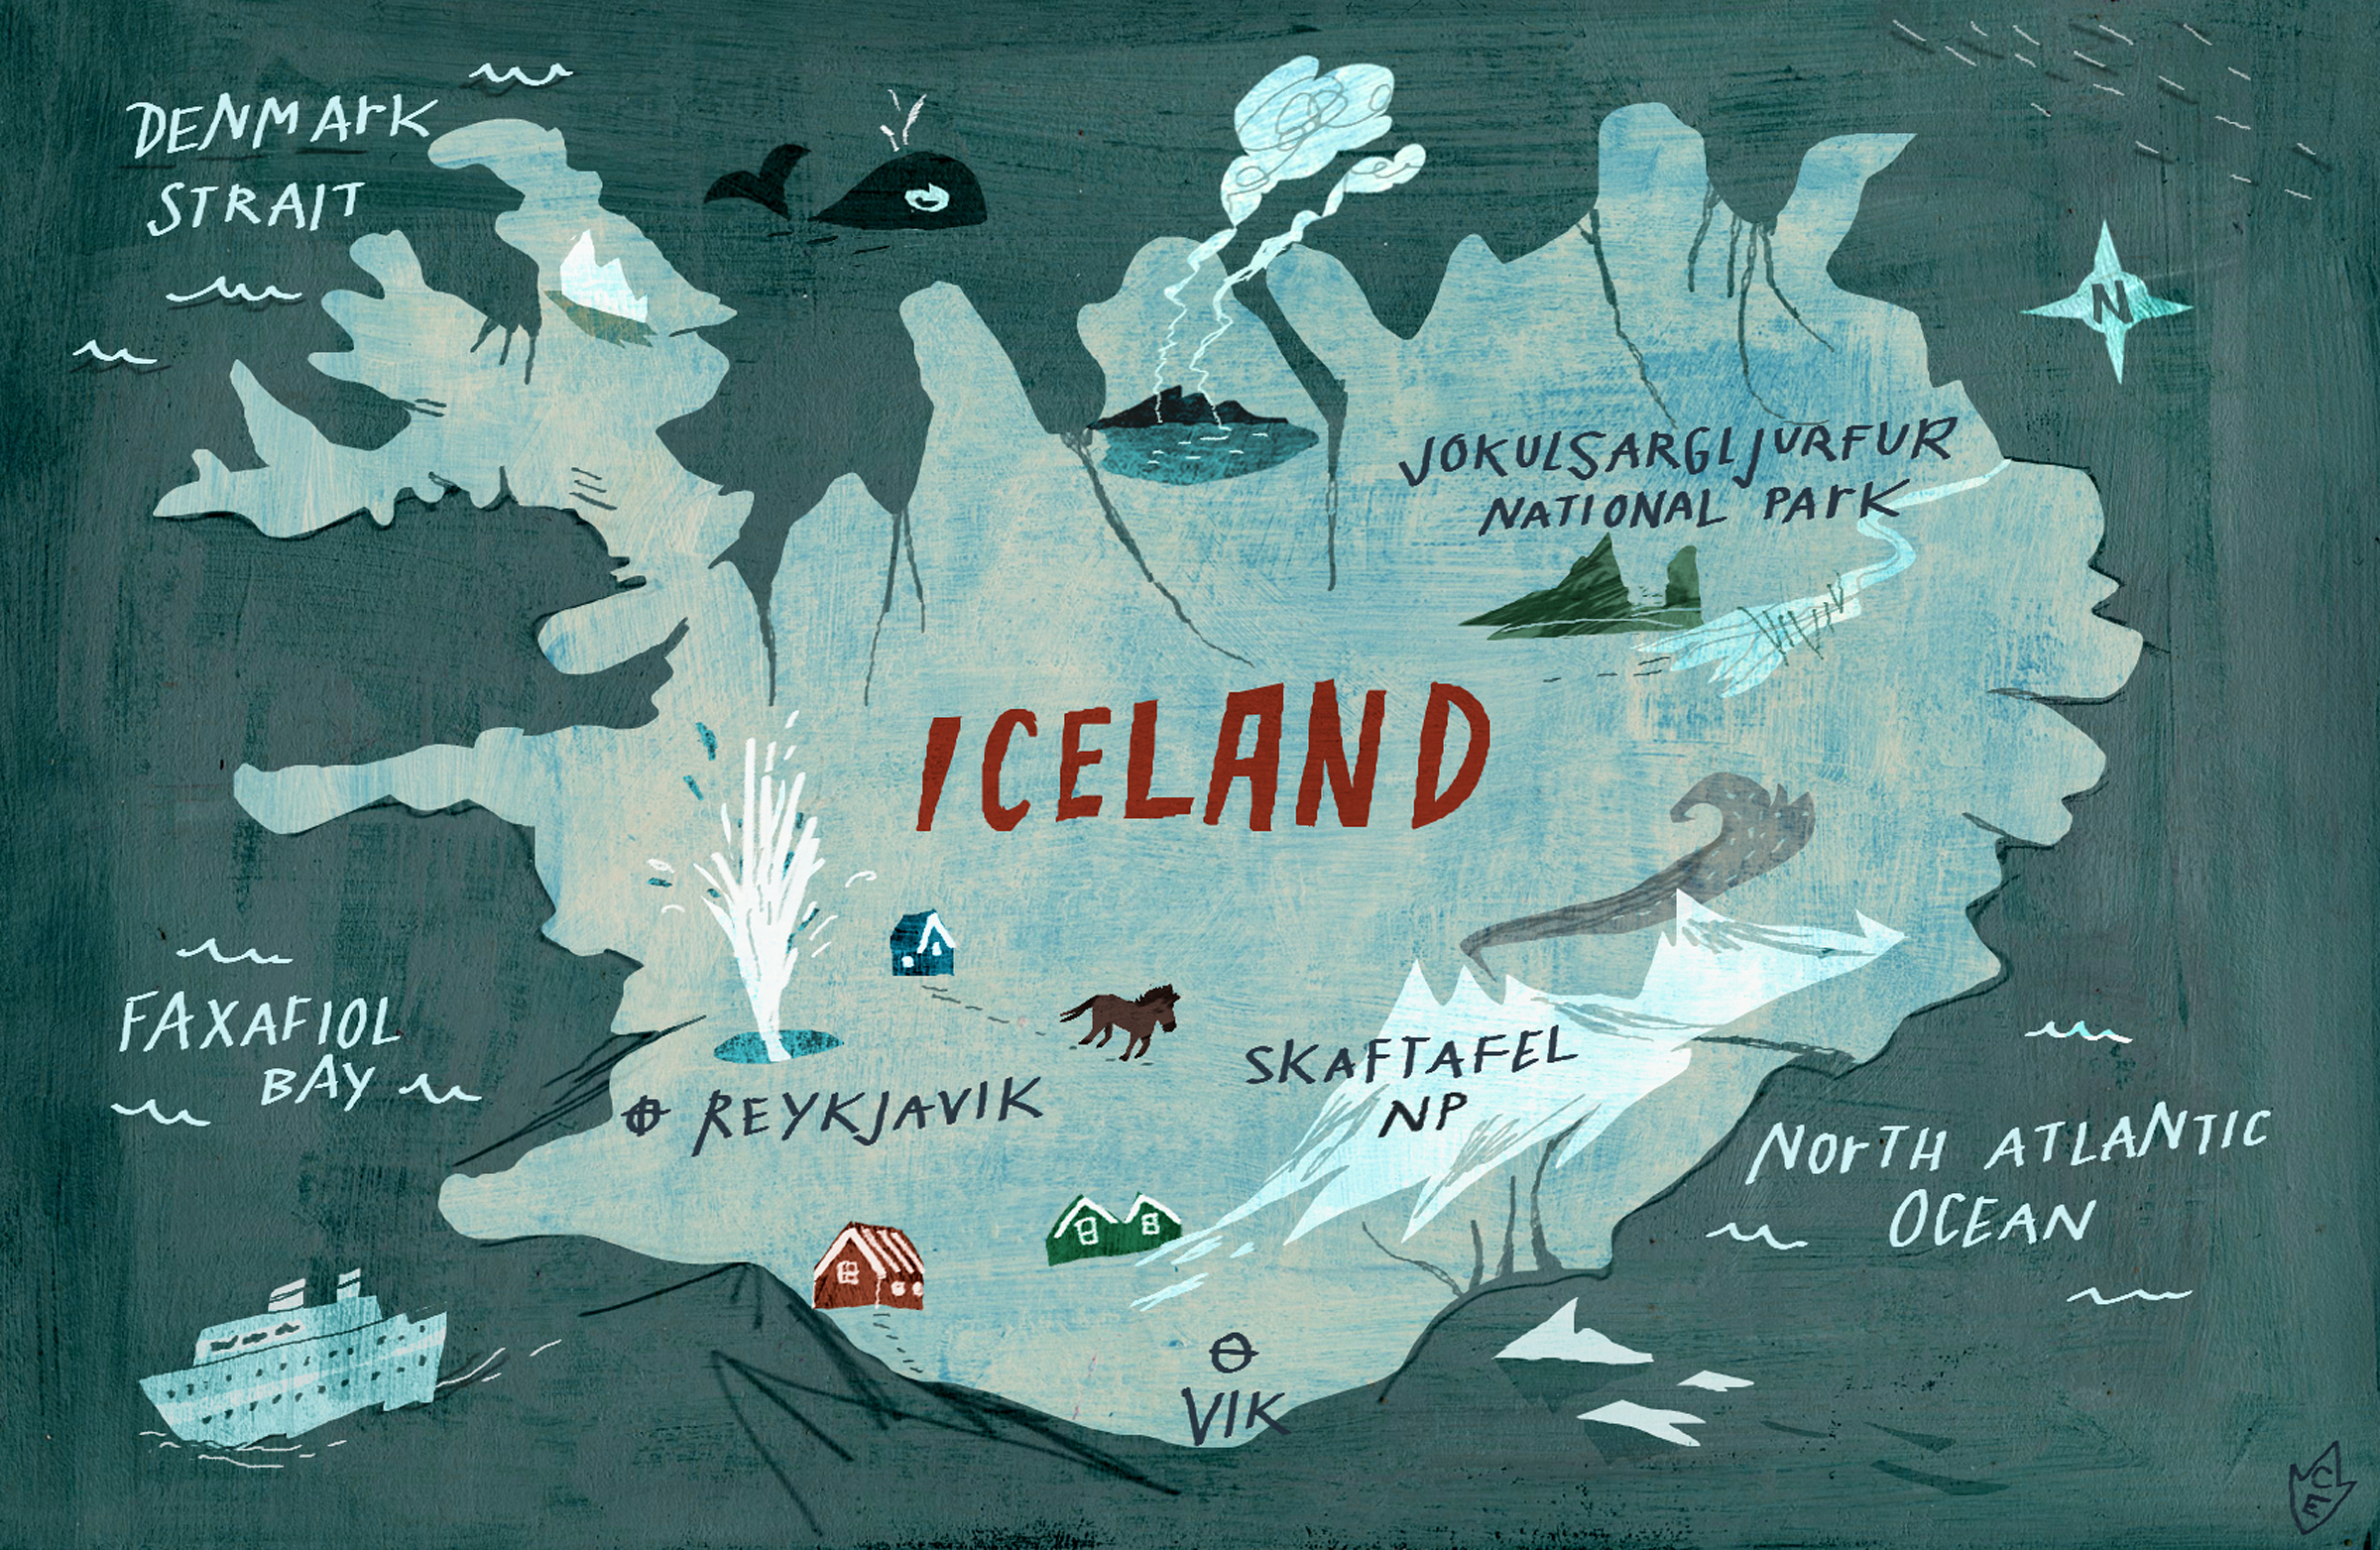 Iceland Map With Sights – Iceland Tourist Attractions Map